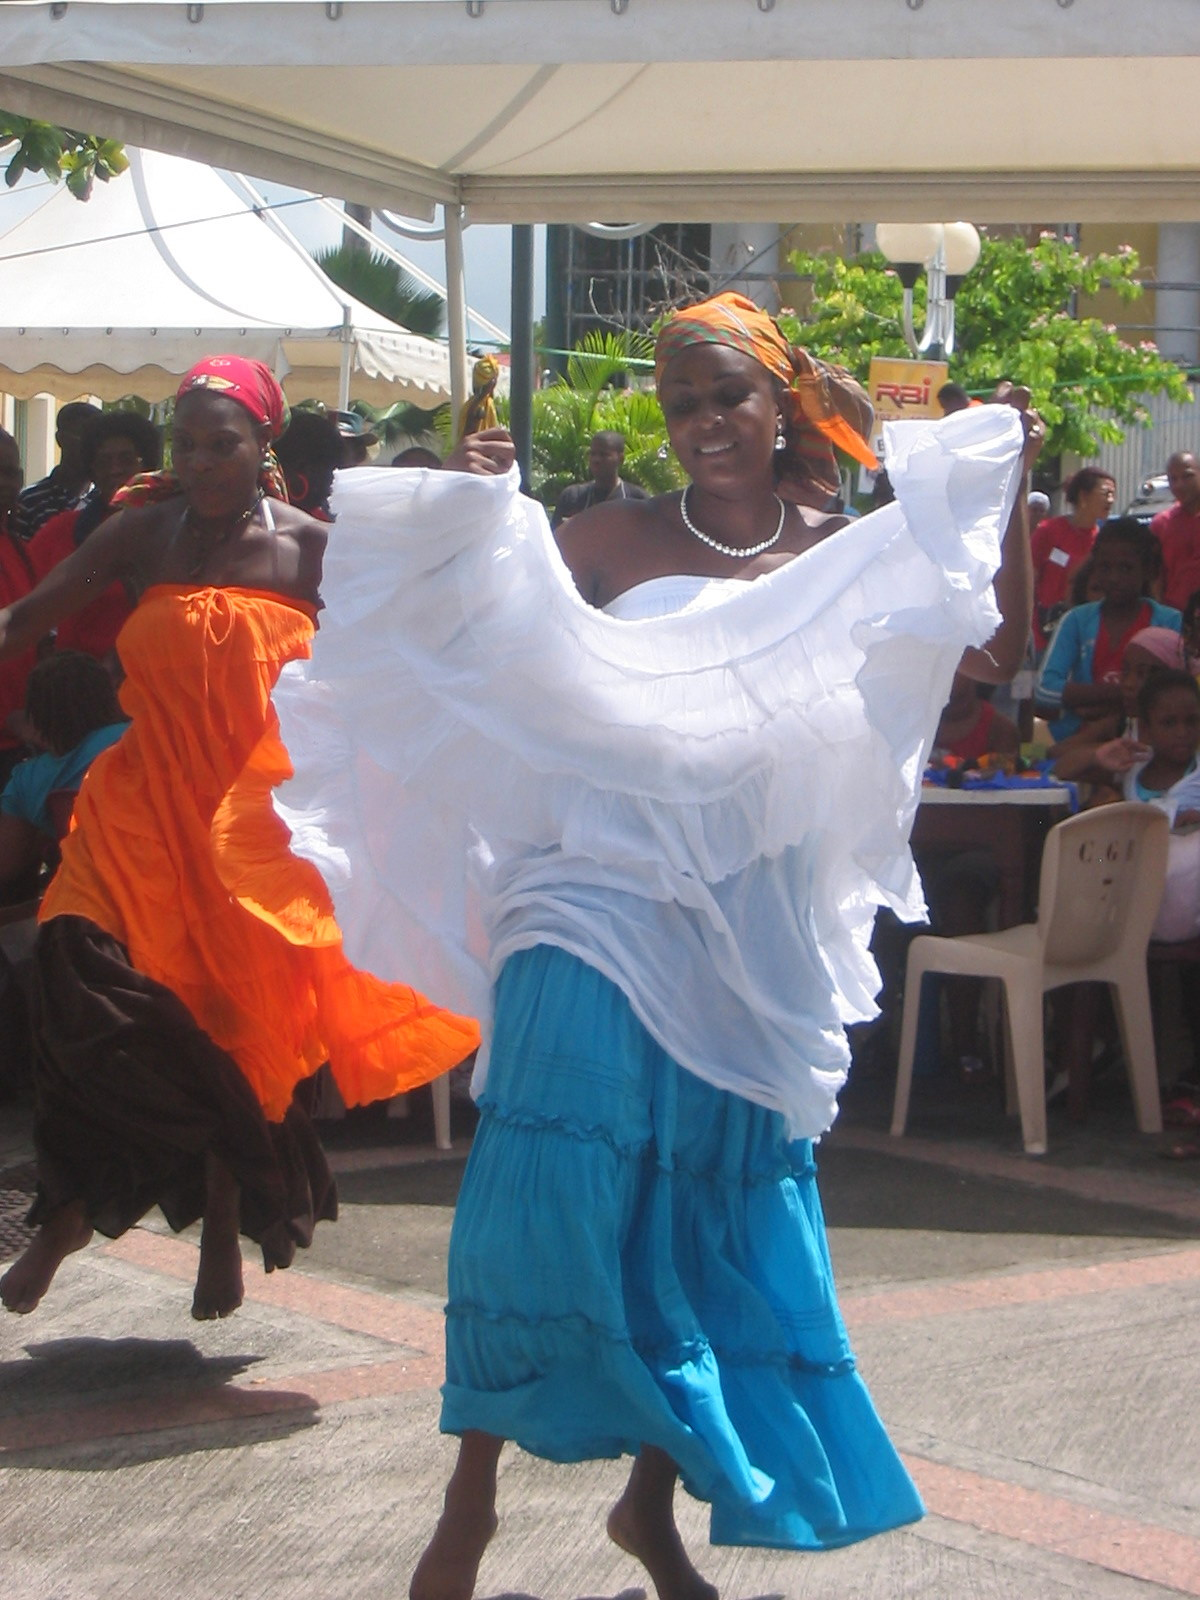 Gwoka Dancers at Carnaval